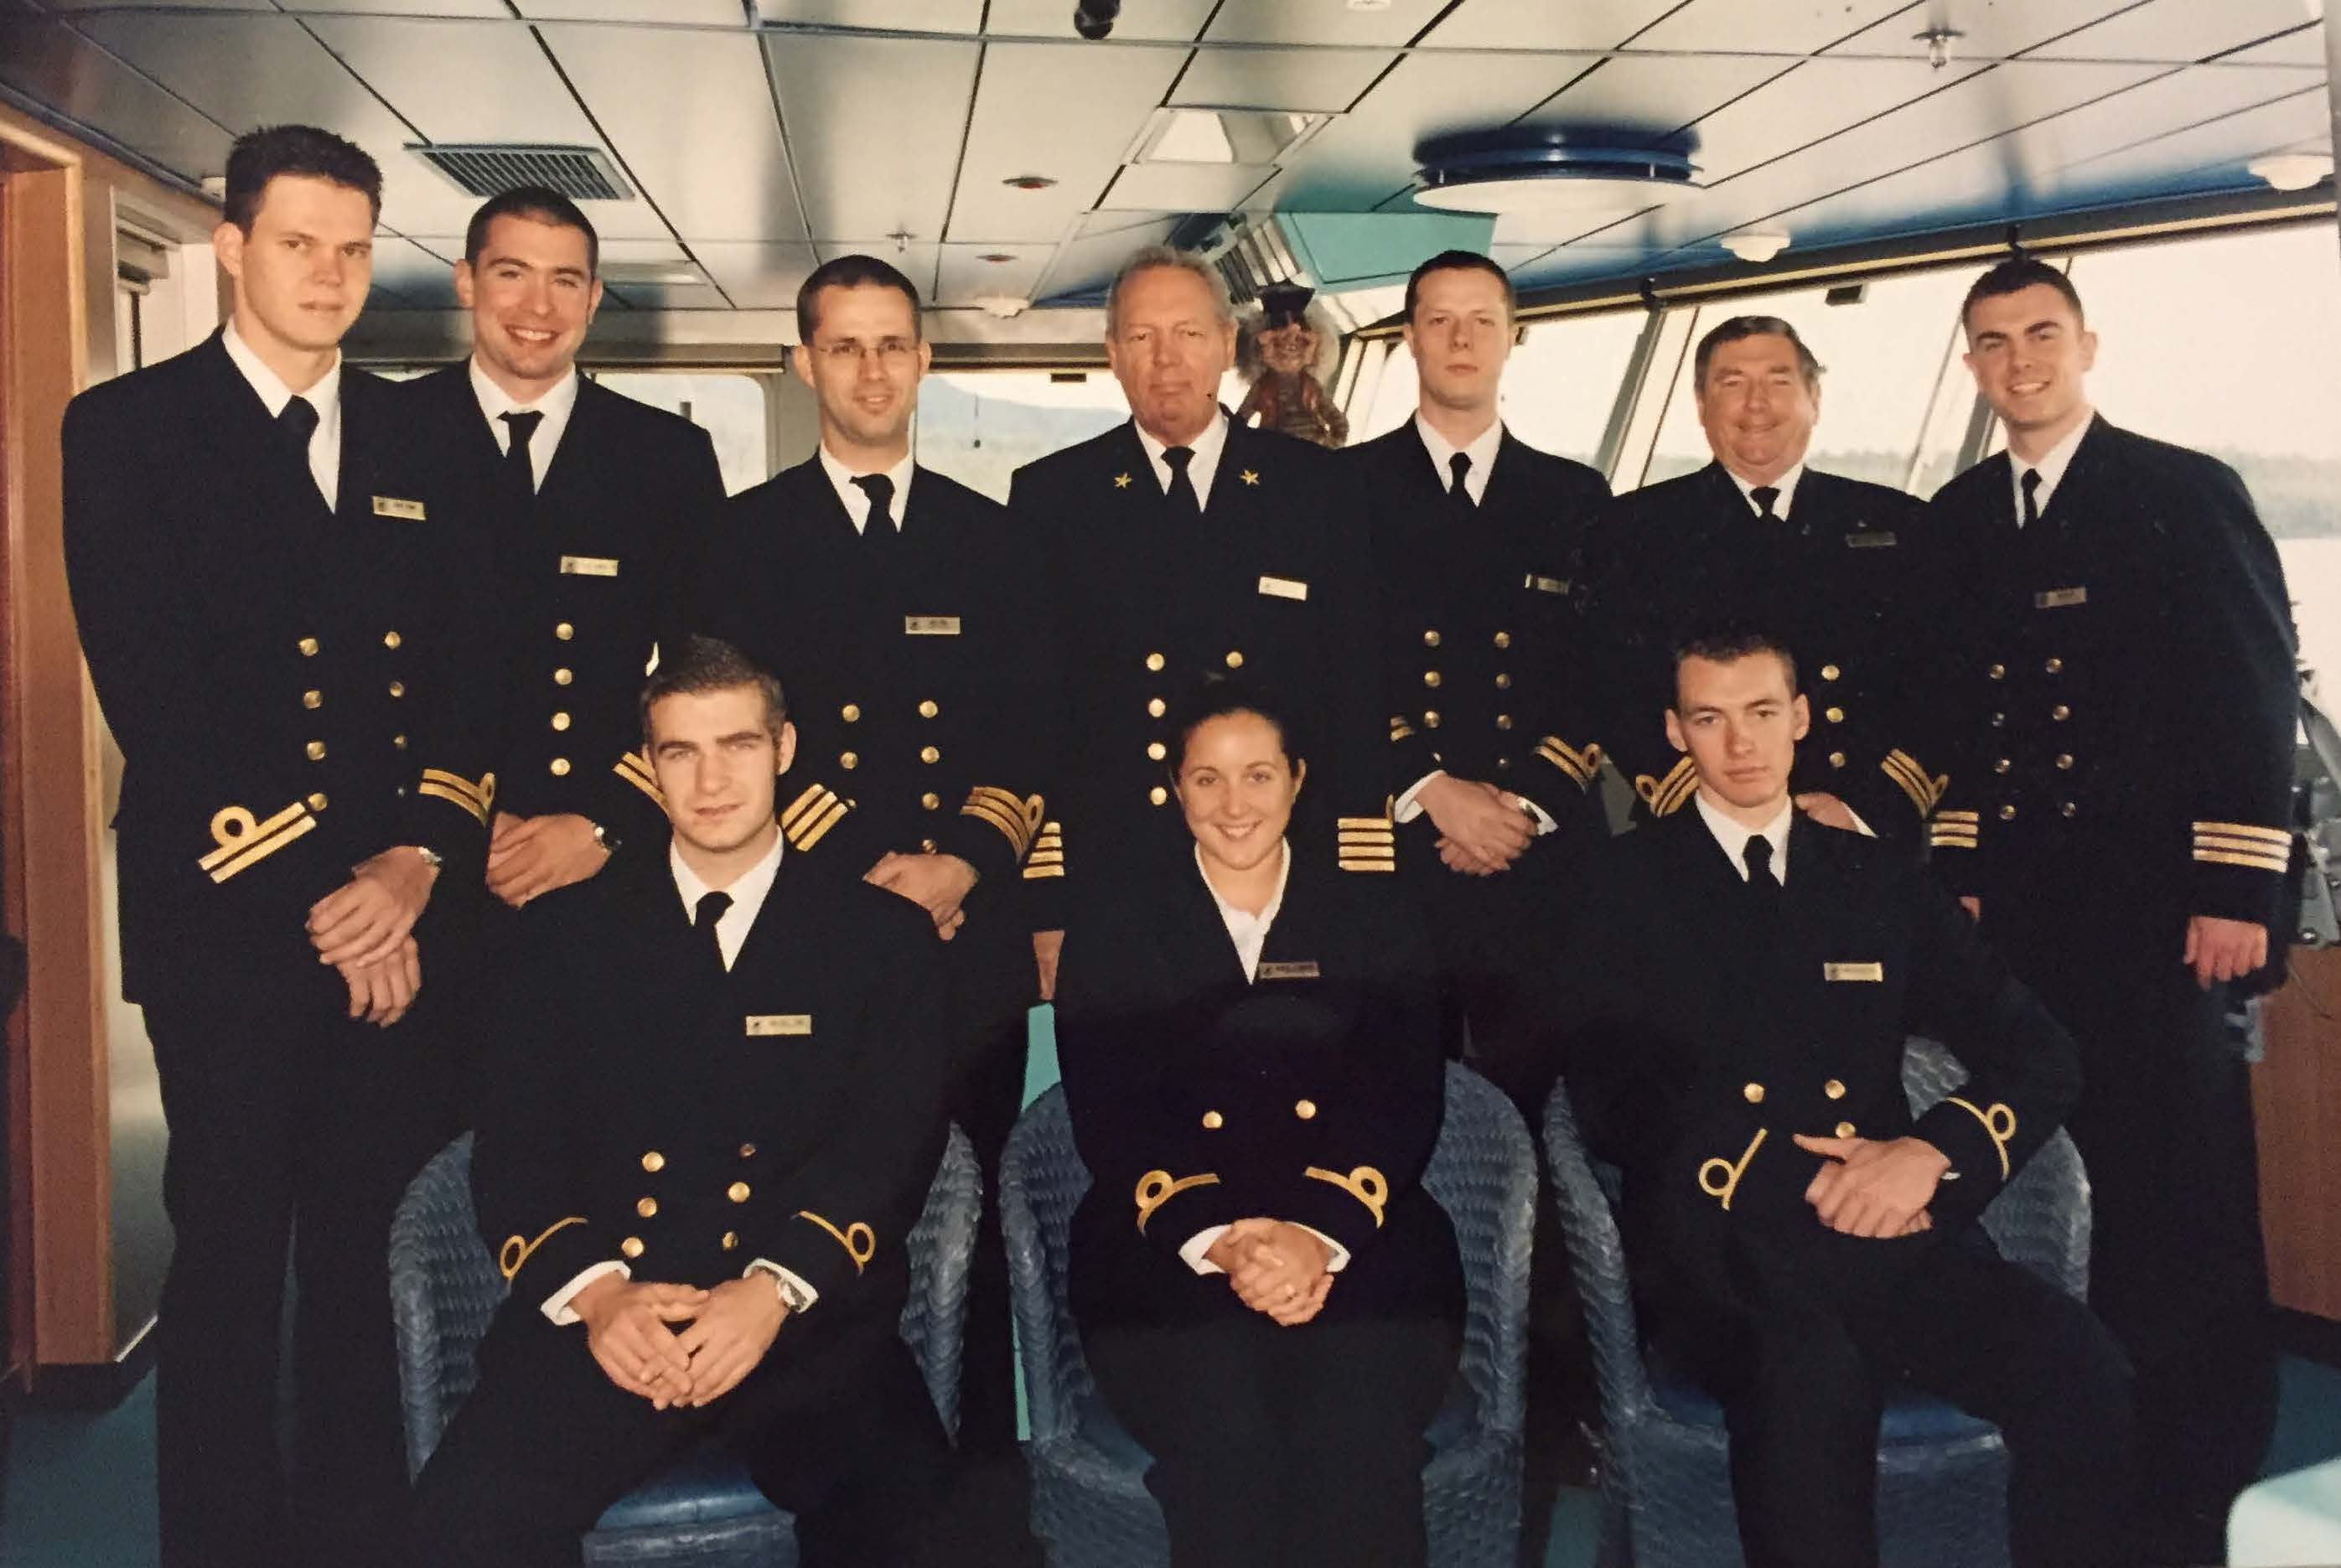 Rob as an officer on board the Osterdam. Photo credit: Rob Ducat